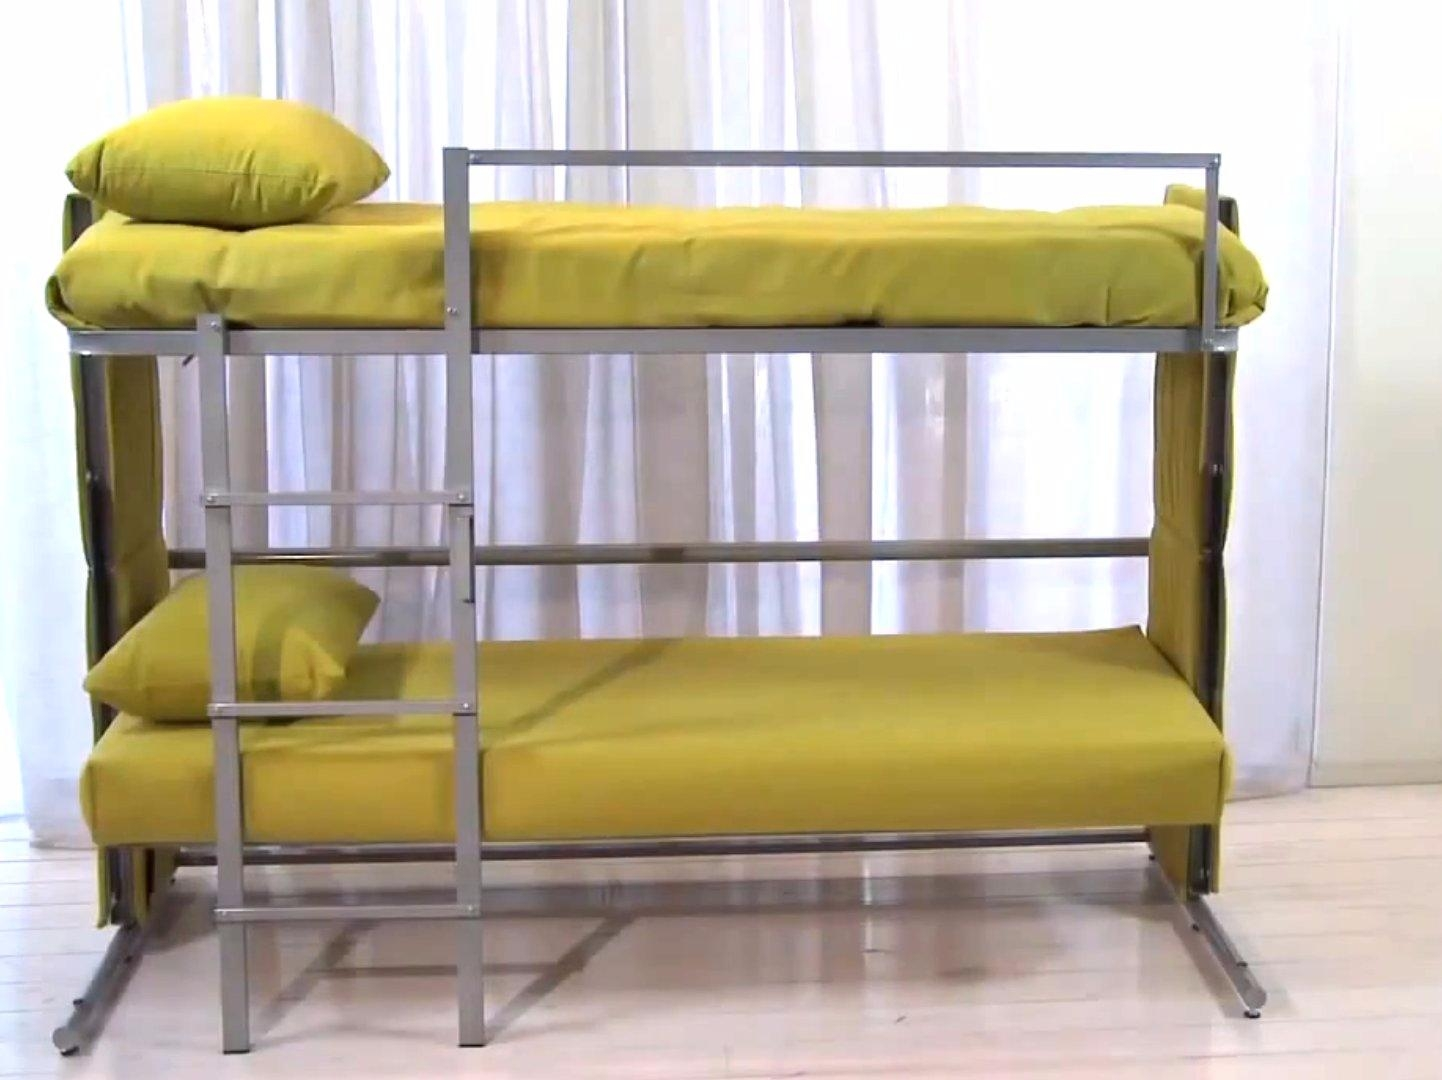 Sofa Folds Out Into A Bunk Bed – Business Insider Throughout Sofa Bunk Beds (Image 18 of 20)